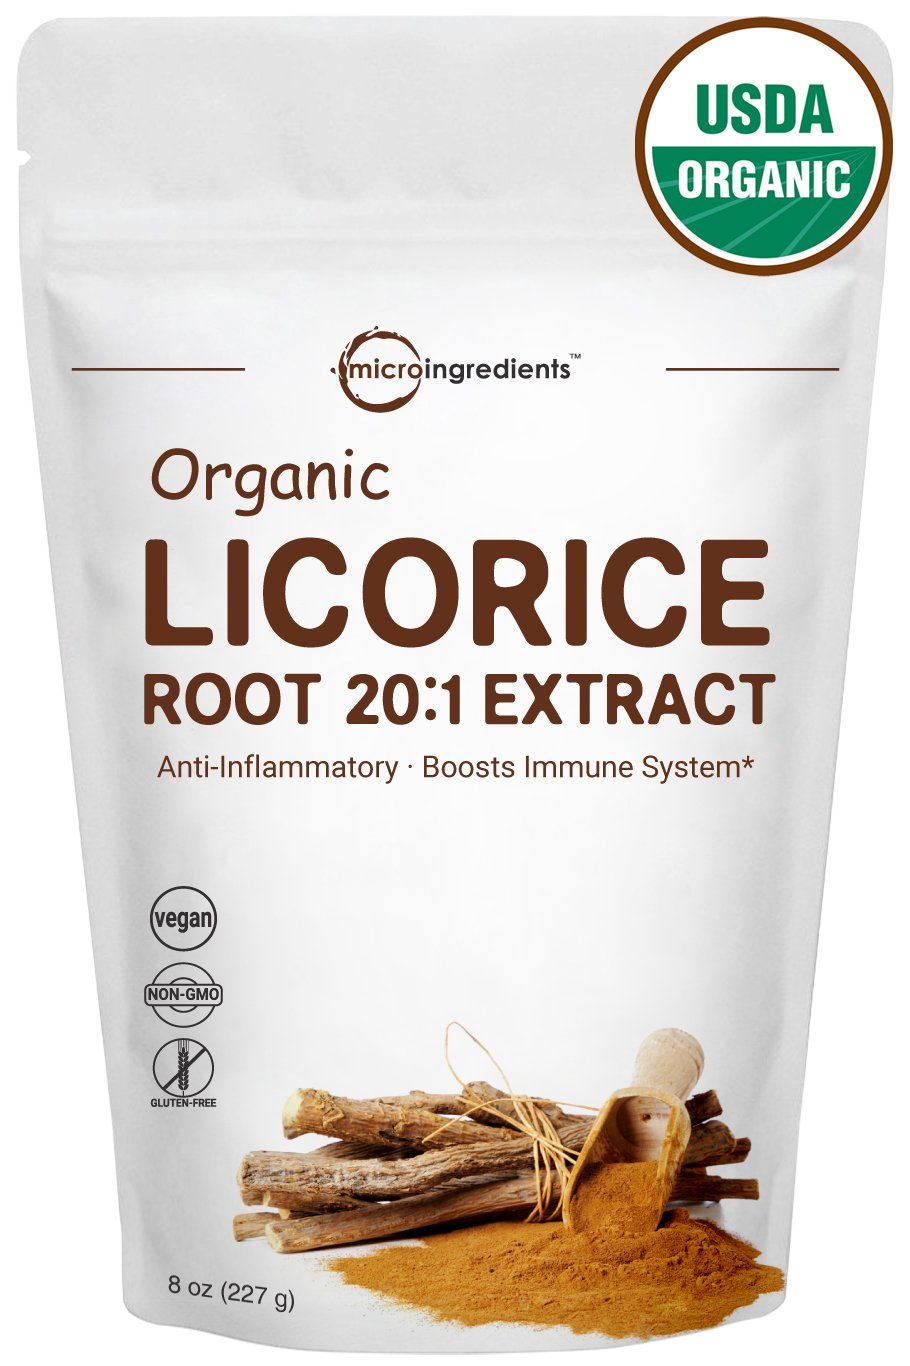 Organic Licorice Root 20:1 Powder, 8 Ounce, Positively Helps Soothe Cough, Sore Throat & Clear & Comfortable Breathing, Non-GMO and Vegan Friendly